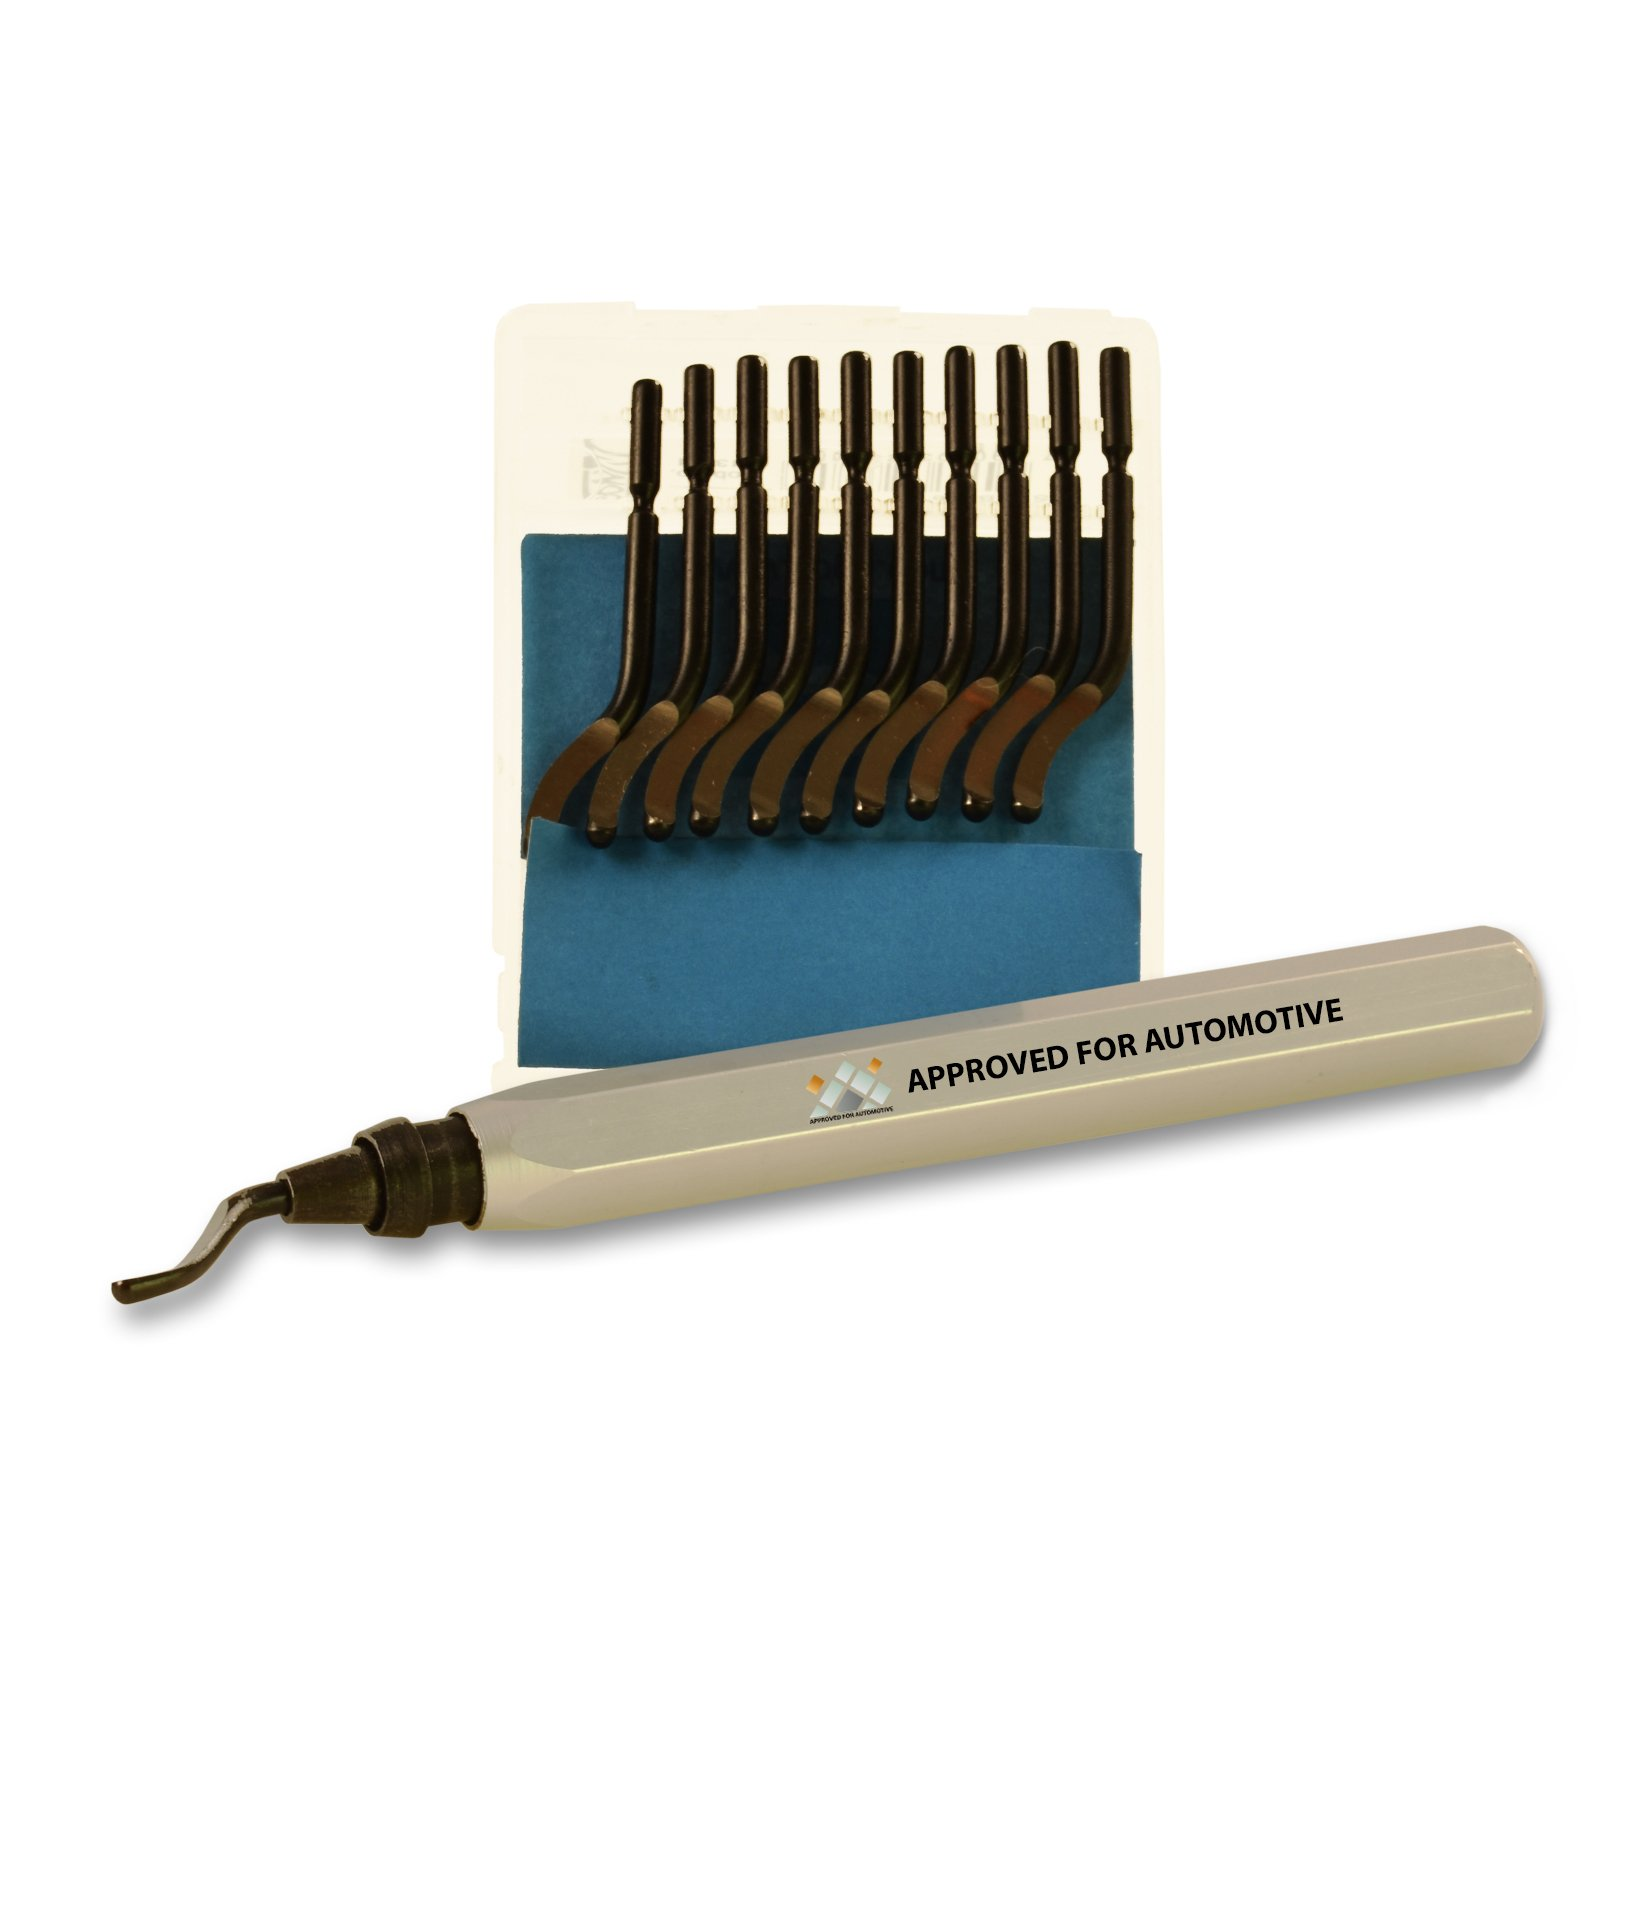 Approved for Automotive Deburring tool with a Blade + Pack of 10 Extra Blades